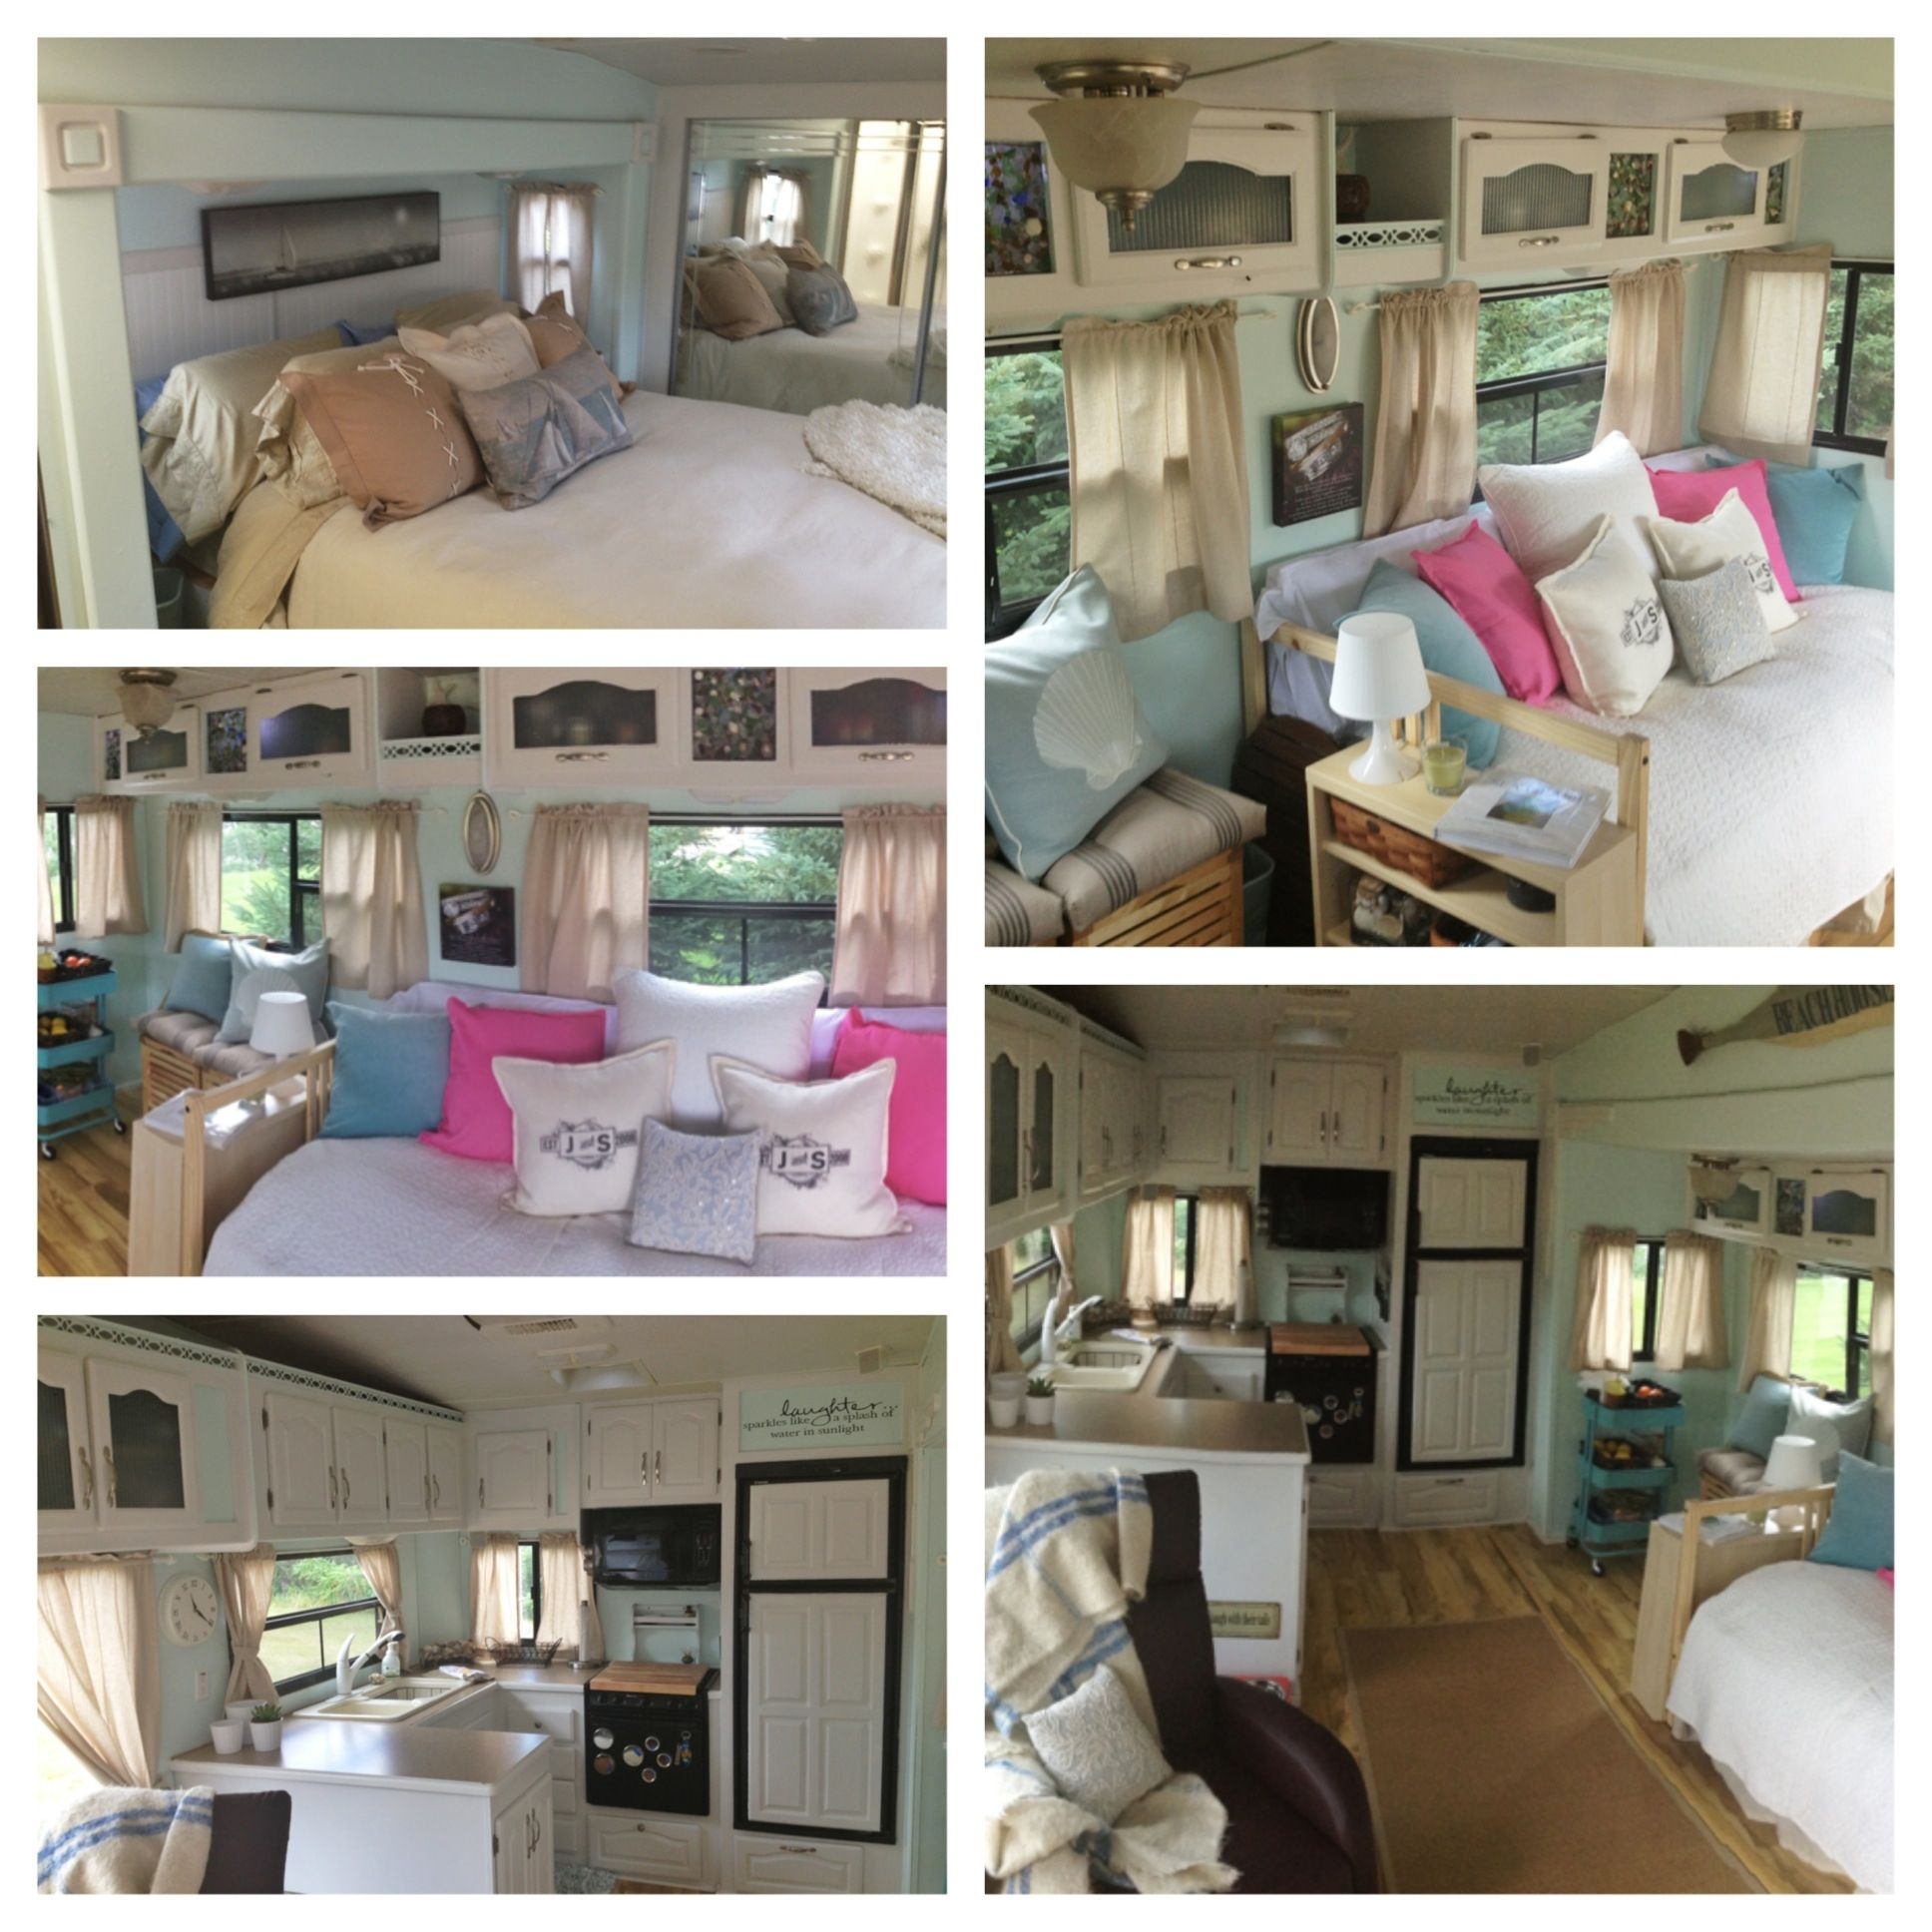 30 Exclusive Image Of Best Ideas To Redecorate Your Rv Trailer